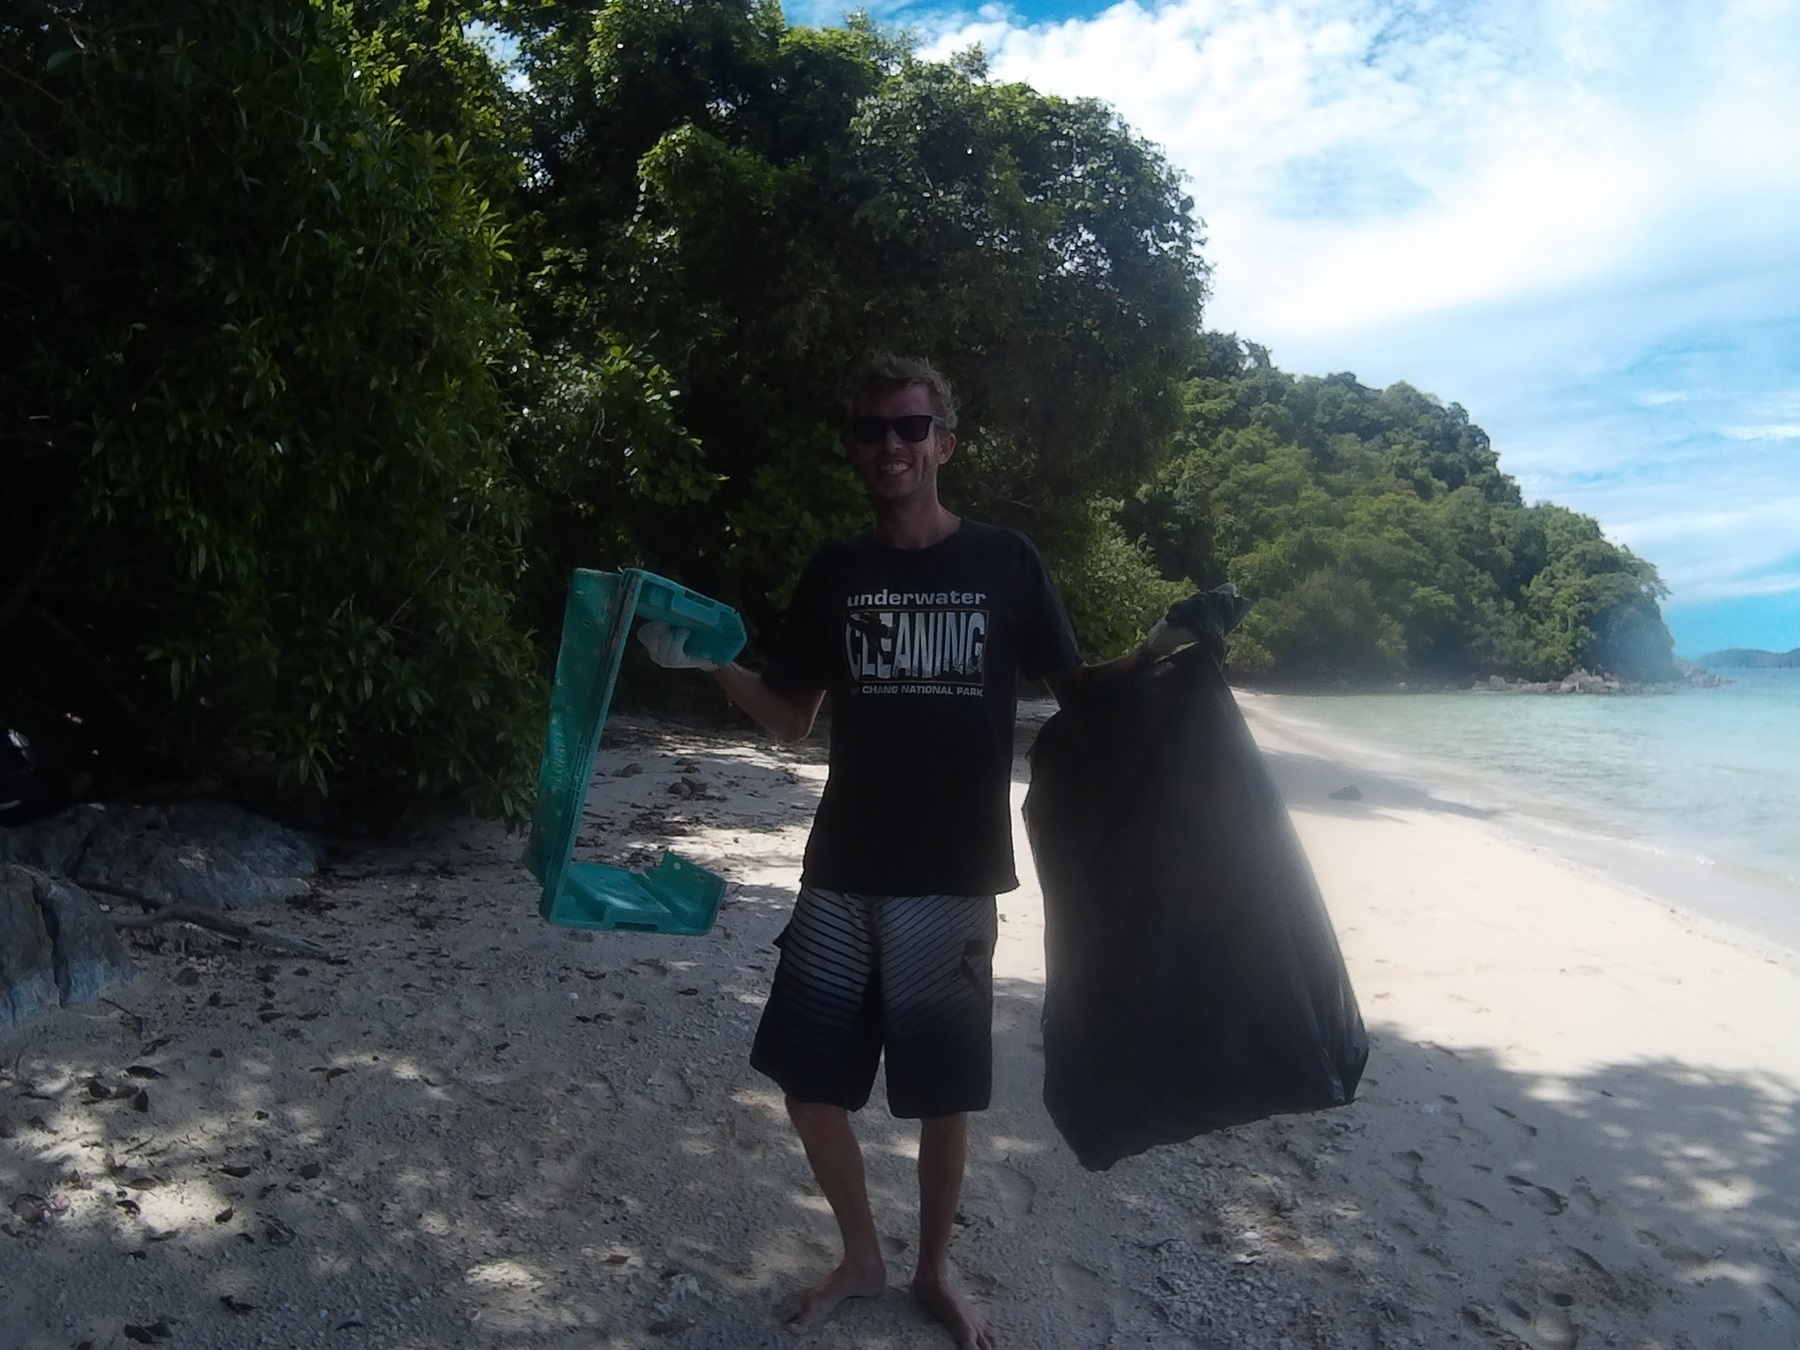 bb-staff-on-the-beach-clean-up